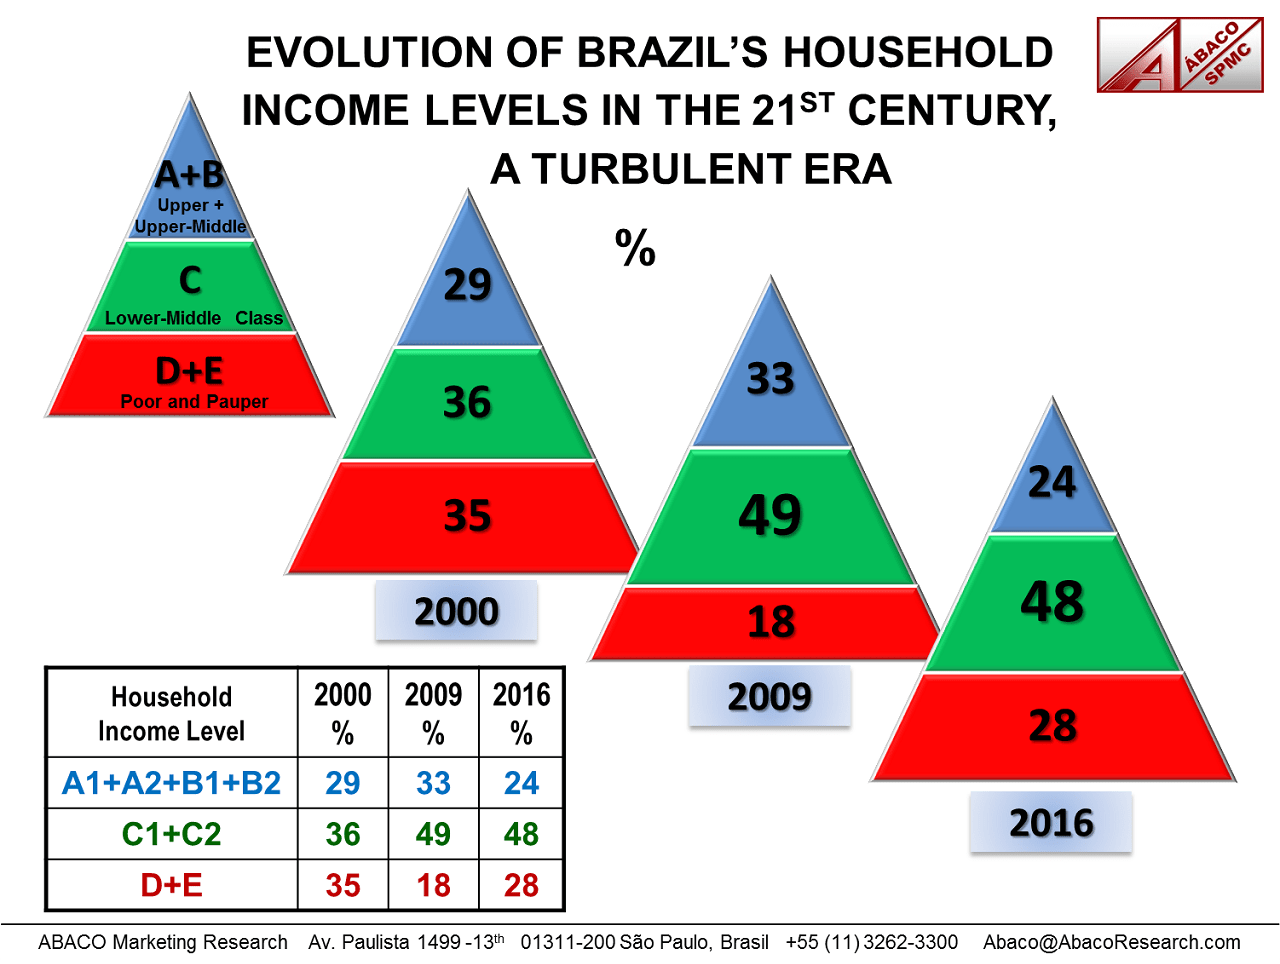 Pyramids of Brazil's SEL classes A+B, C and D+E in the years 2000, 2009 and 2016